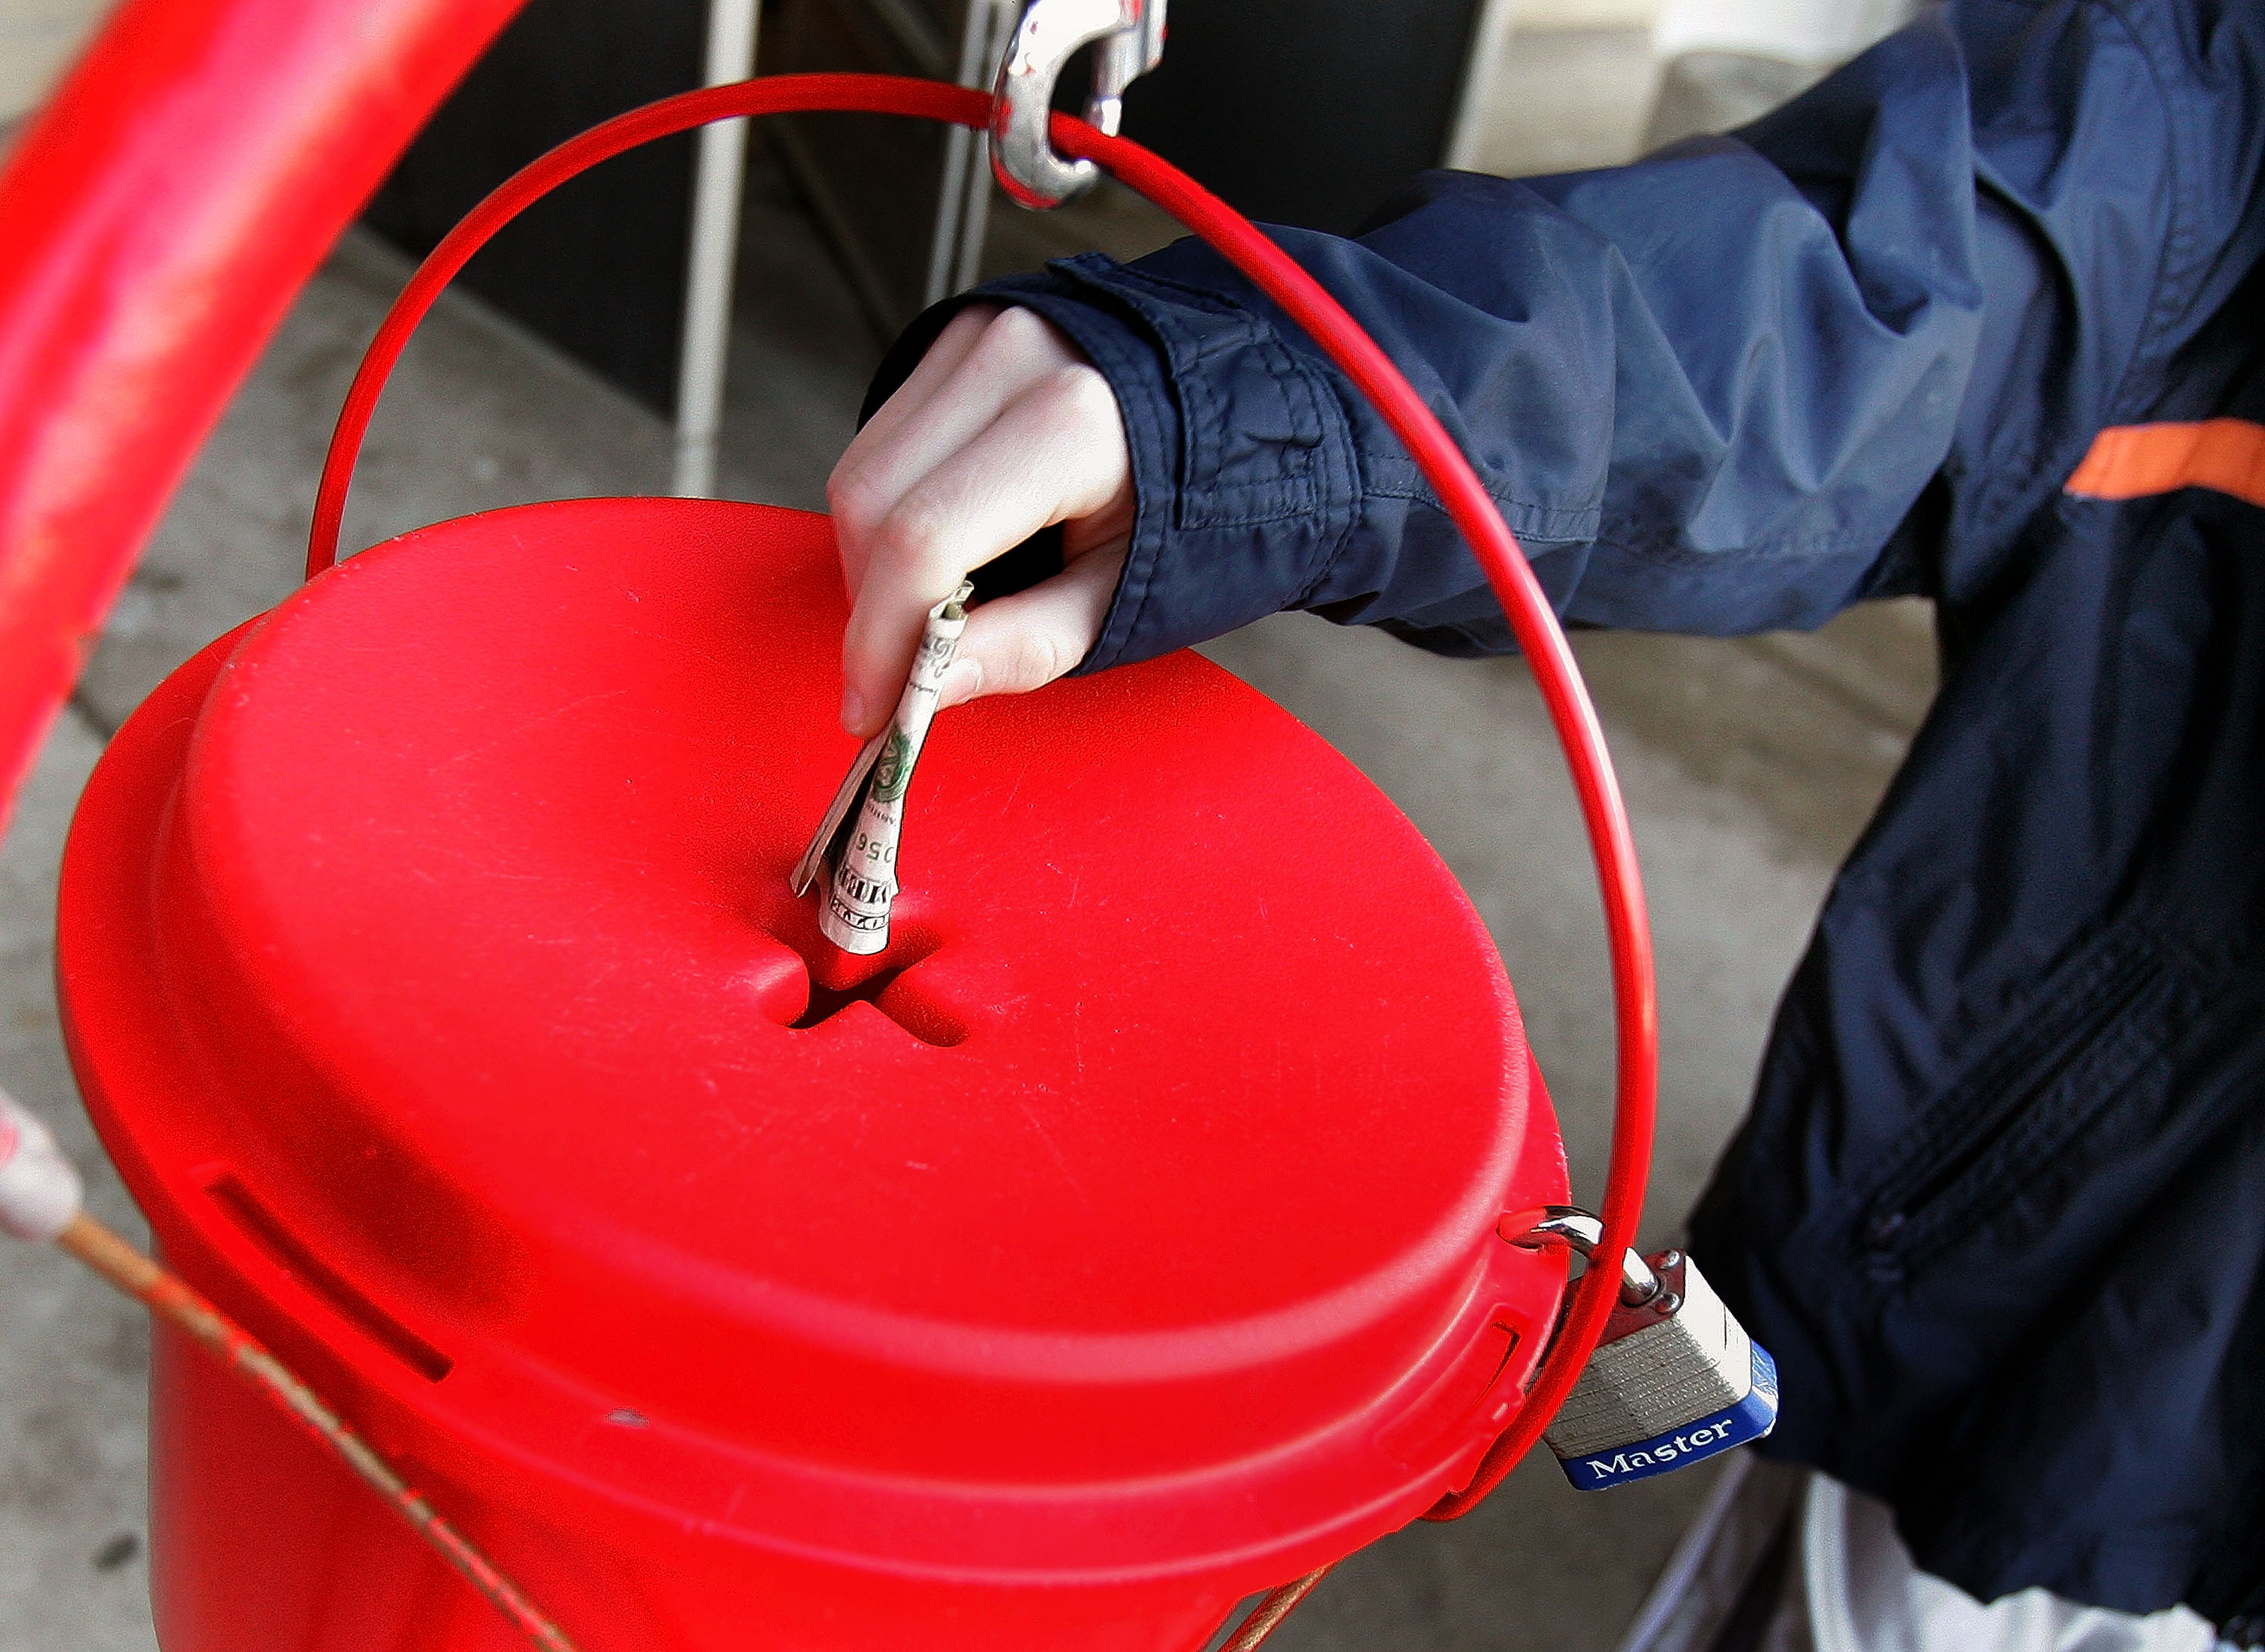 Tips for secure, meaningful giving this holiday season